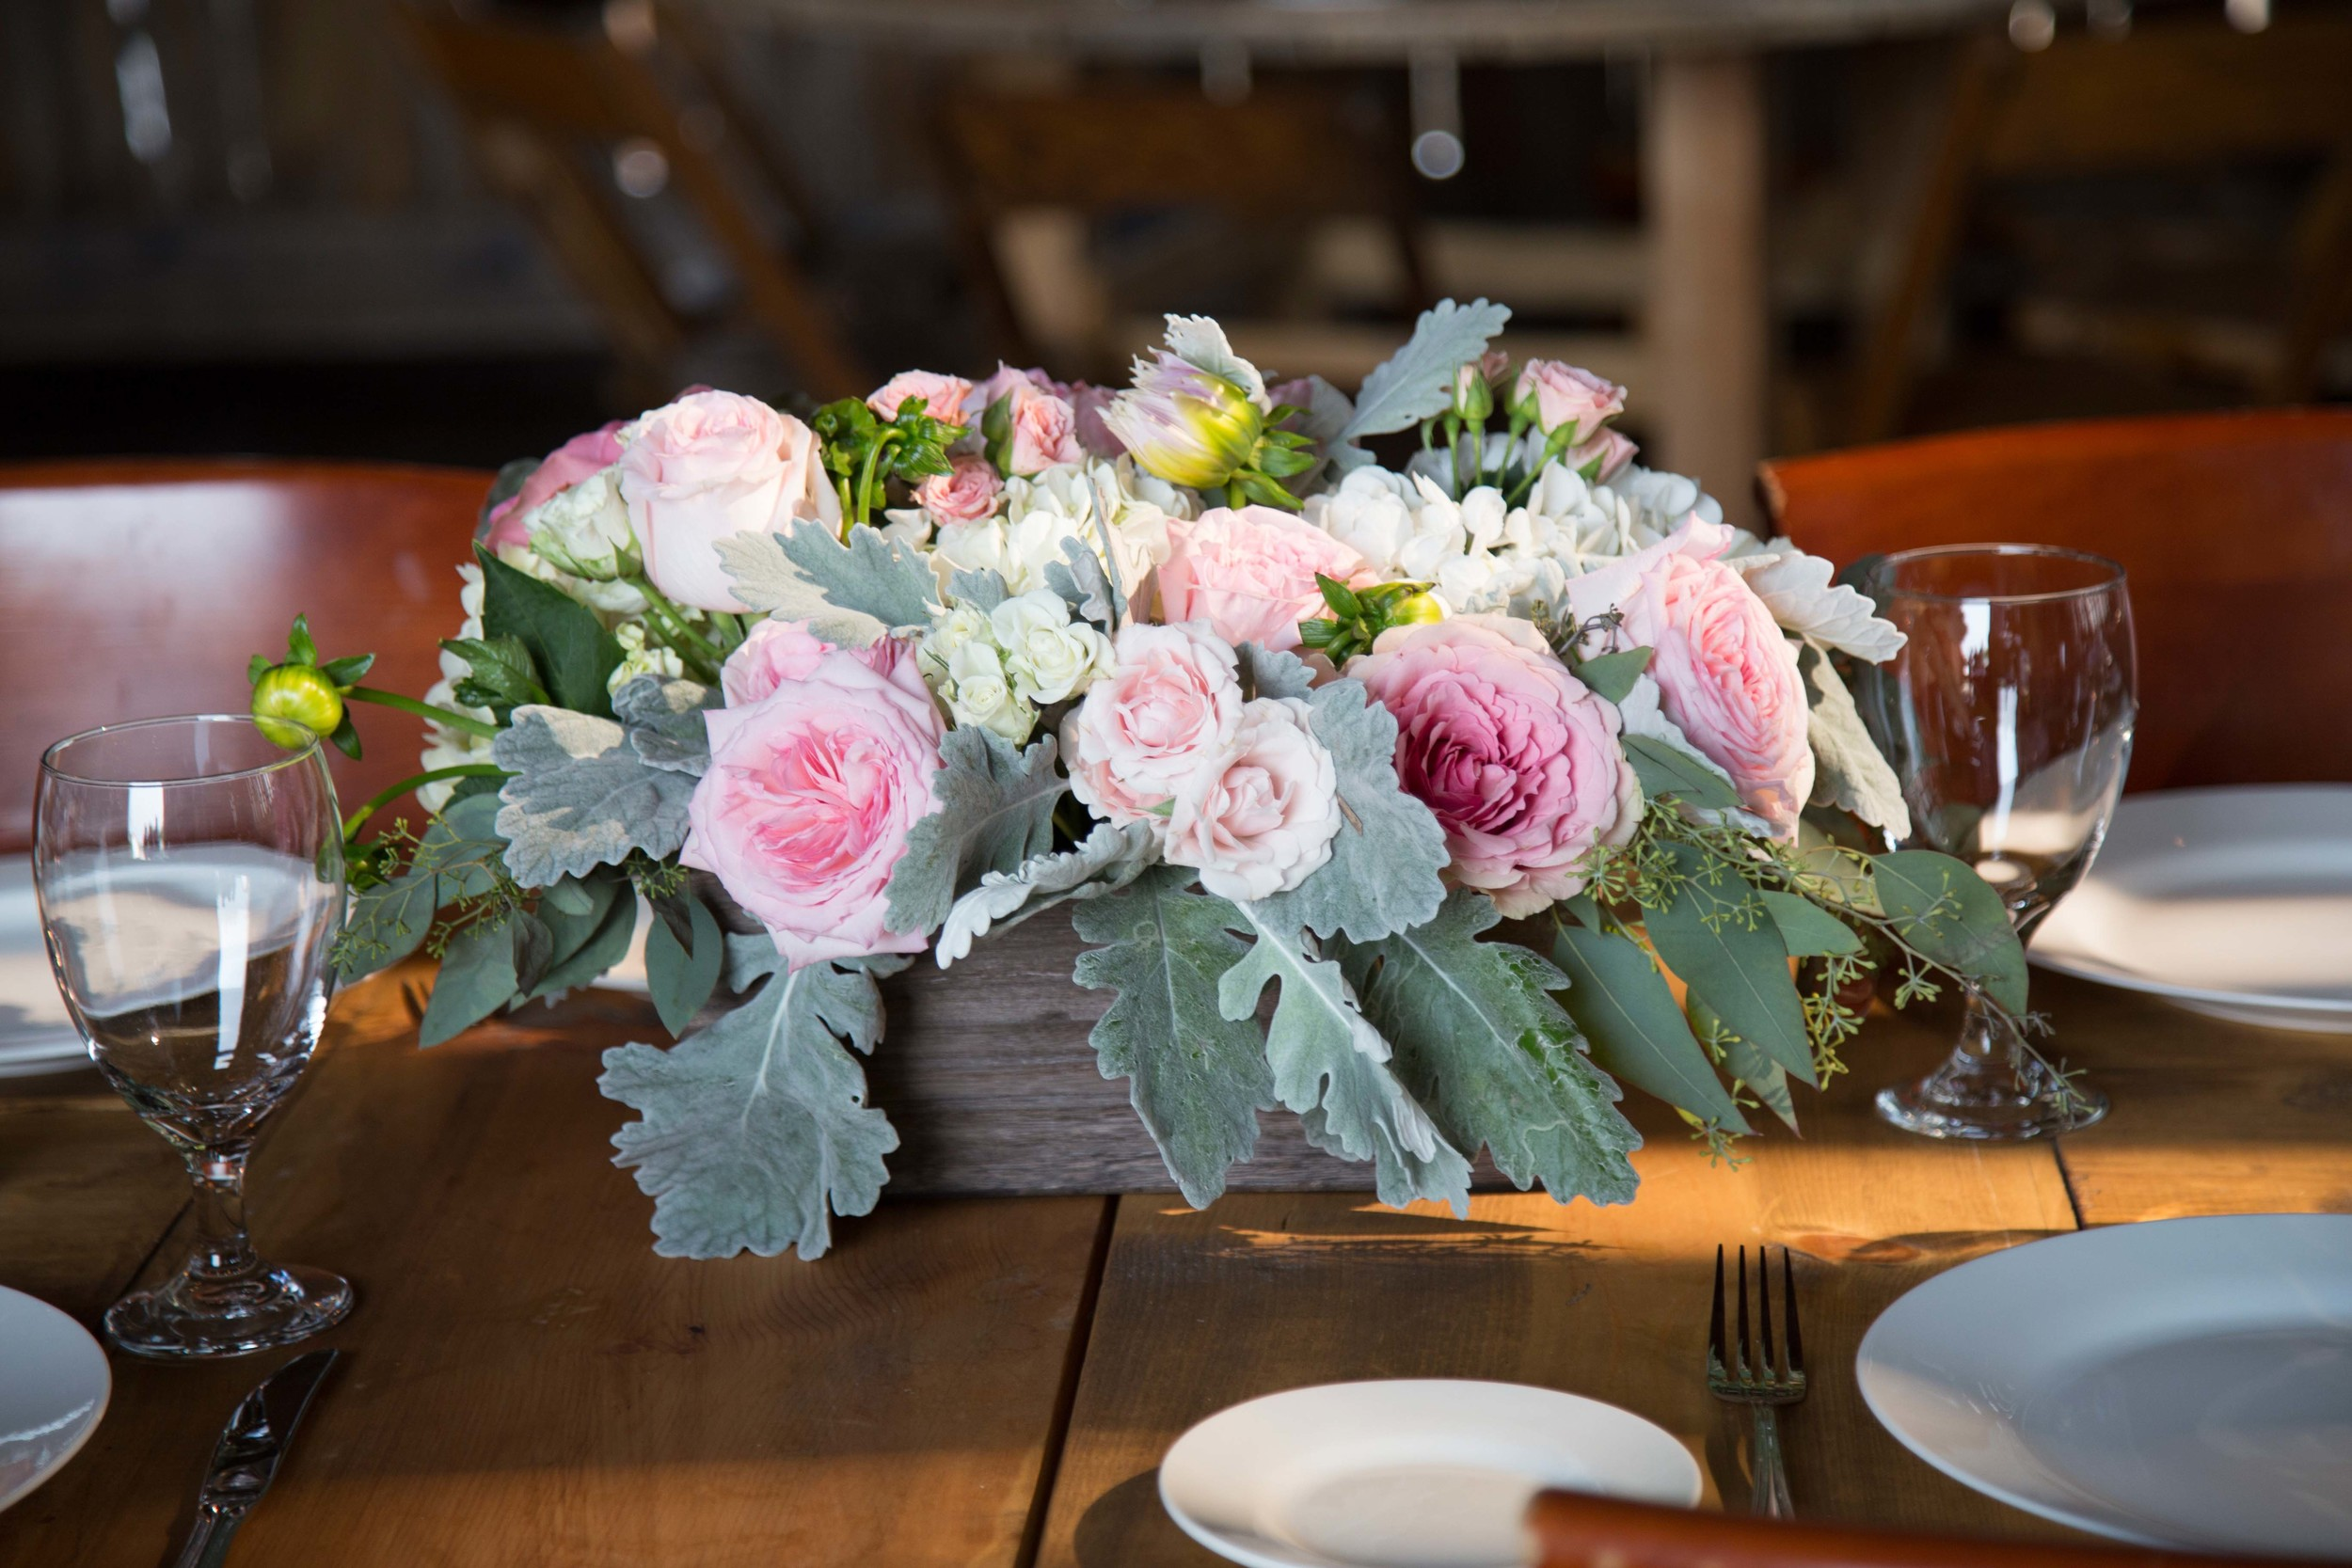 7-3-Barn_Table_Centerpieces_6770 2.jpg